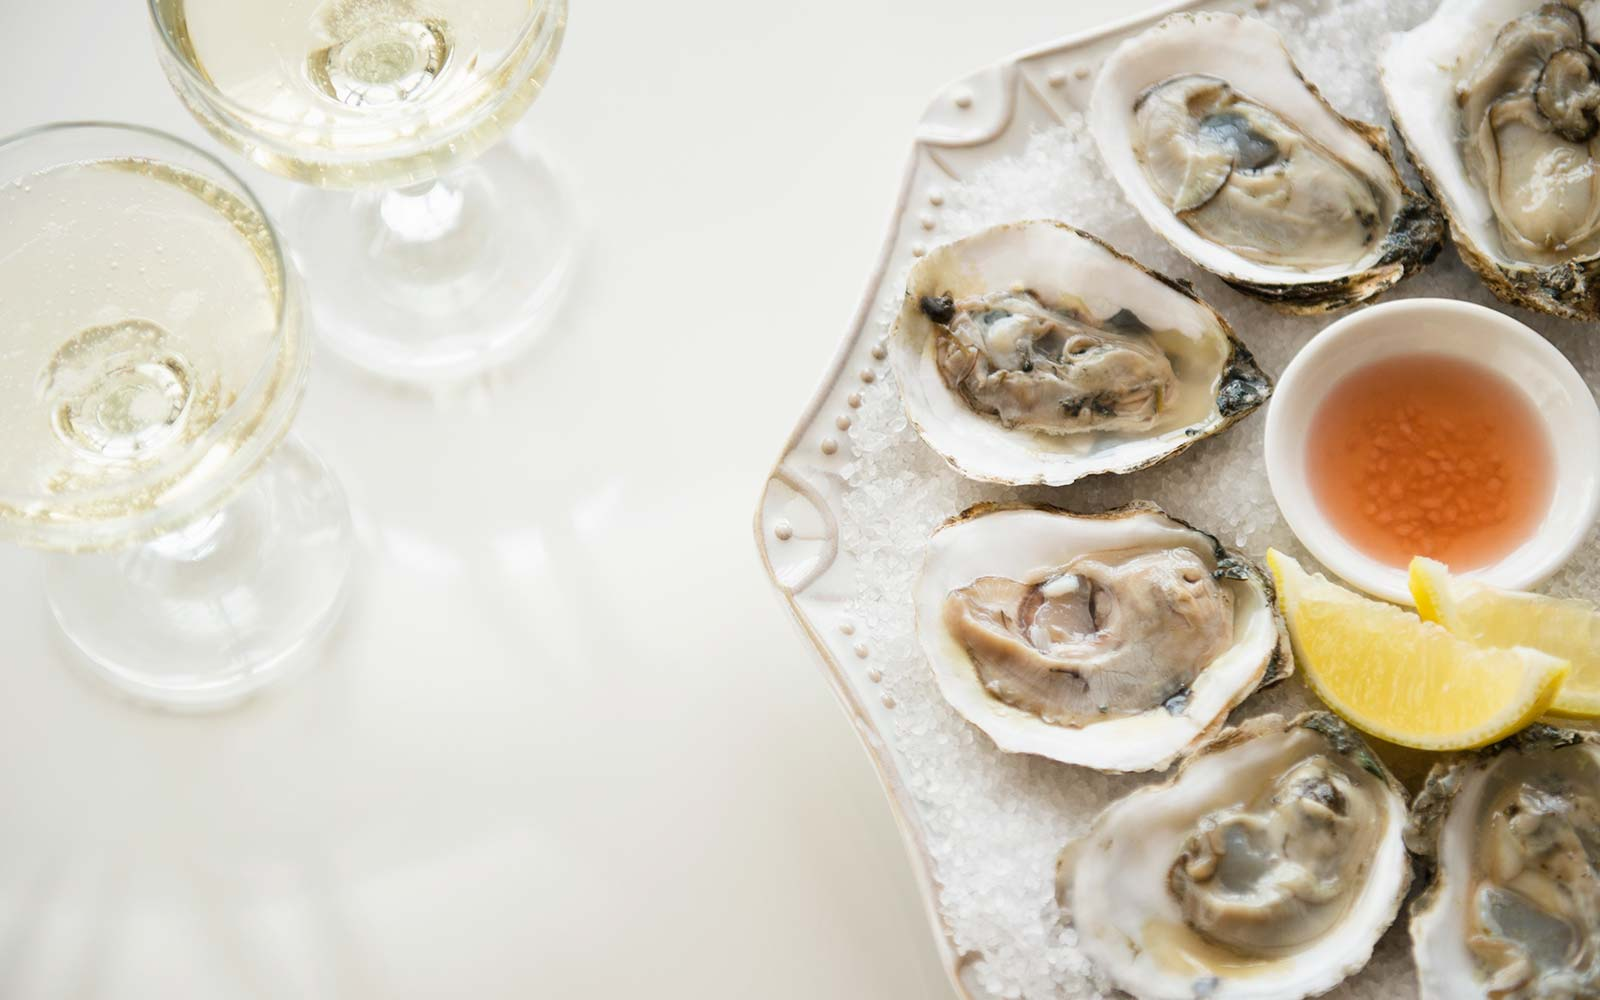 Valentine's Day Oysters for Two Will Cost You $2,450 at This Over-the-top Restaurant